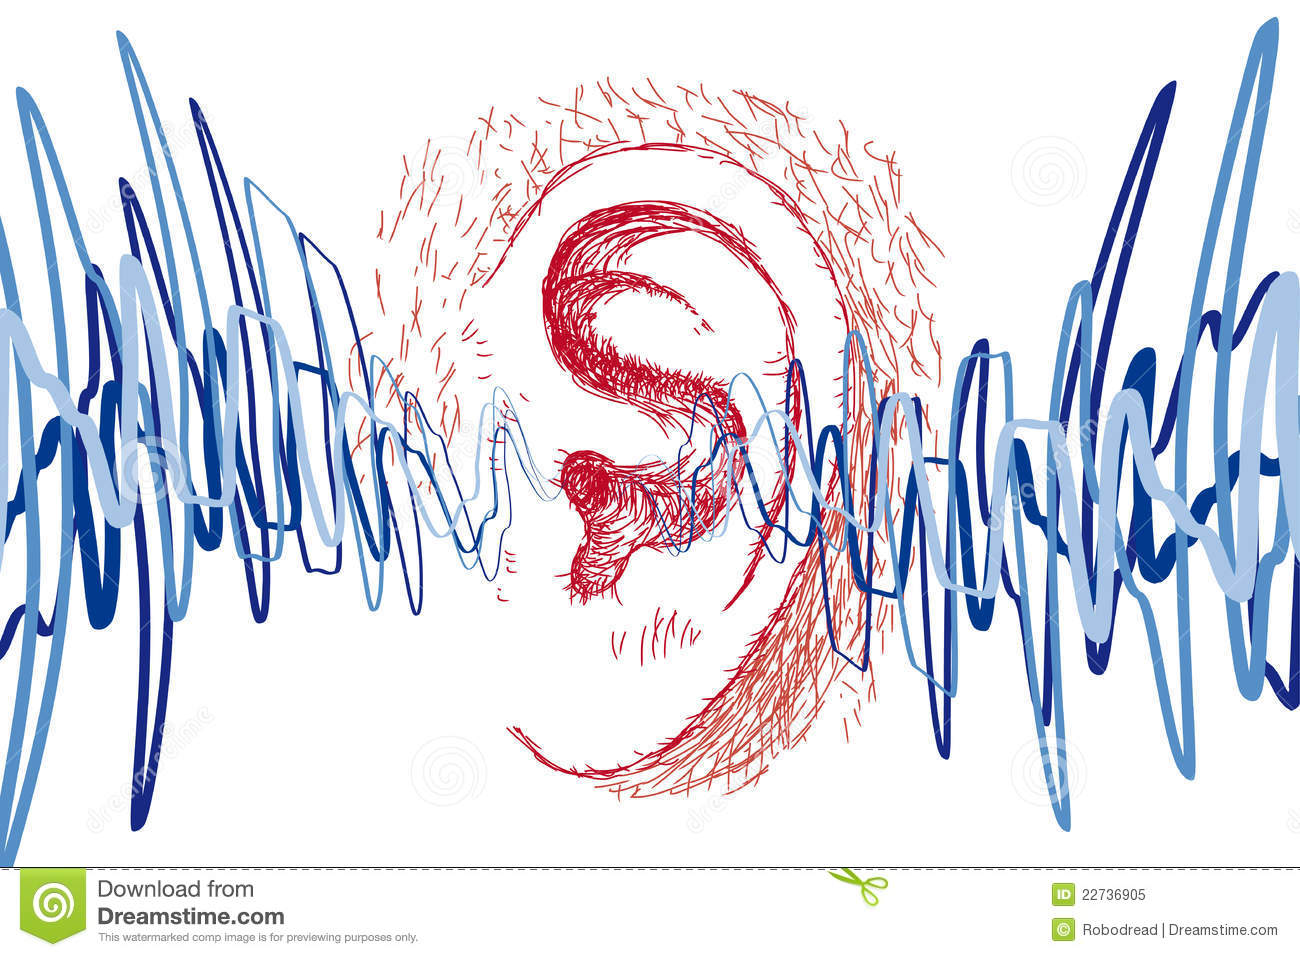 Drawing human ear royalty free stock photography image 25570937 - Royalty Free Stock Photo Ear Human Illustration Sound Waves Listening Vector Drawing